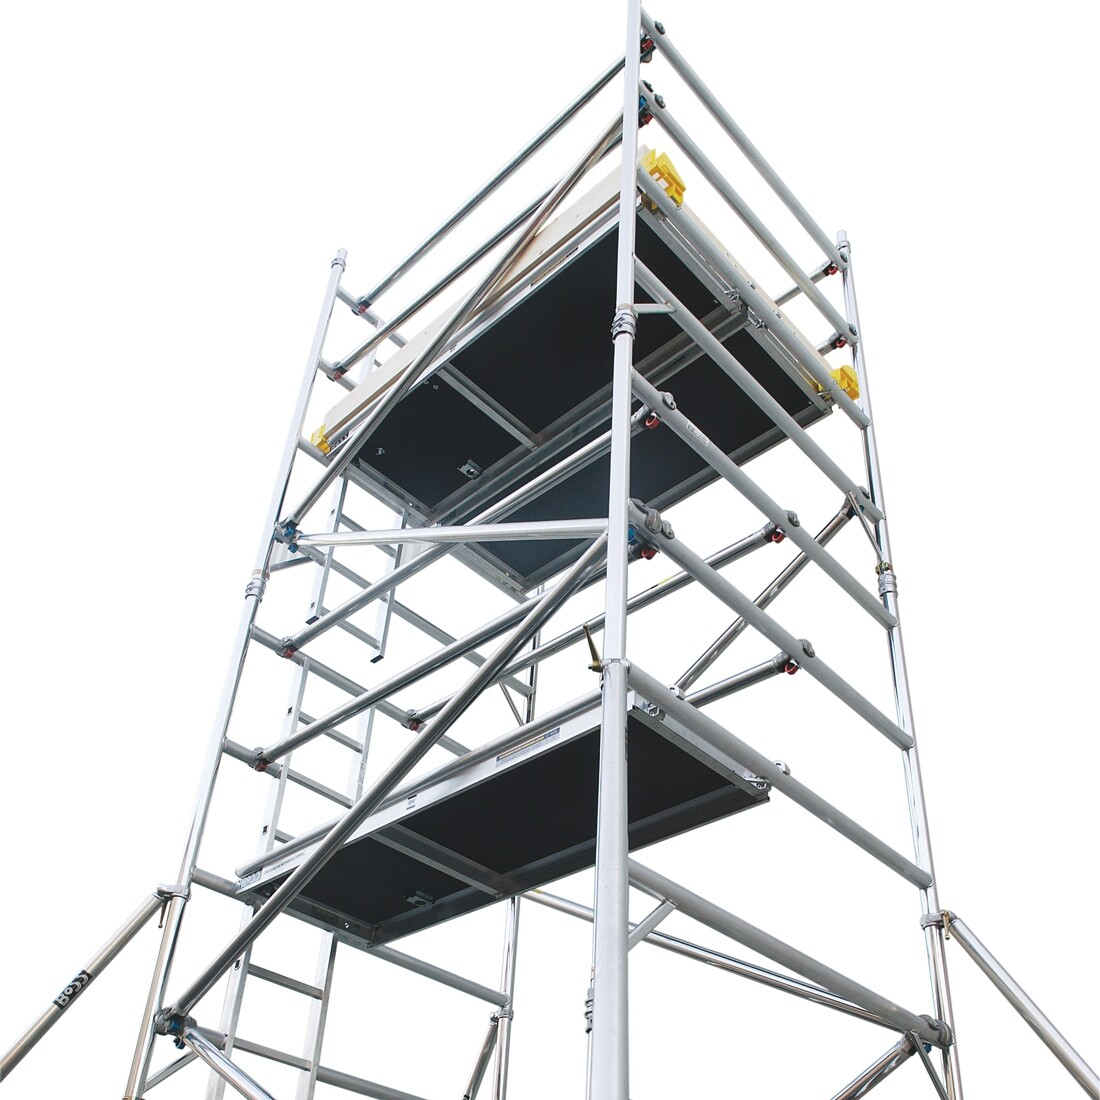 Mobile Tower Double Width - 1.4m wide x 1.8m long x 3.4m high